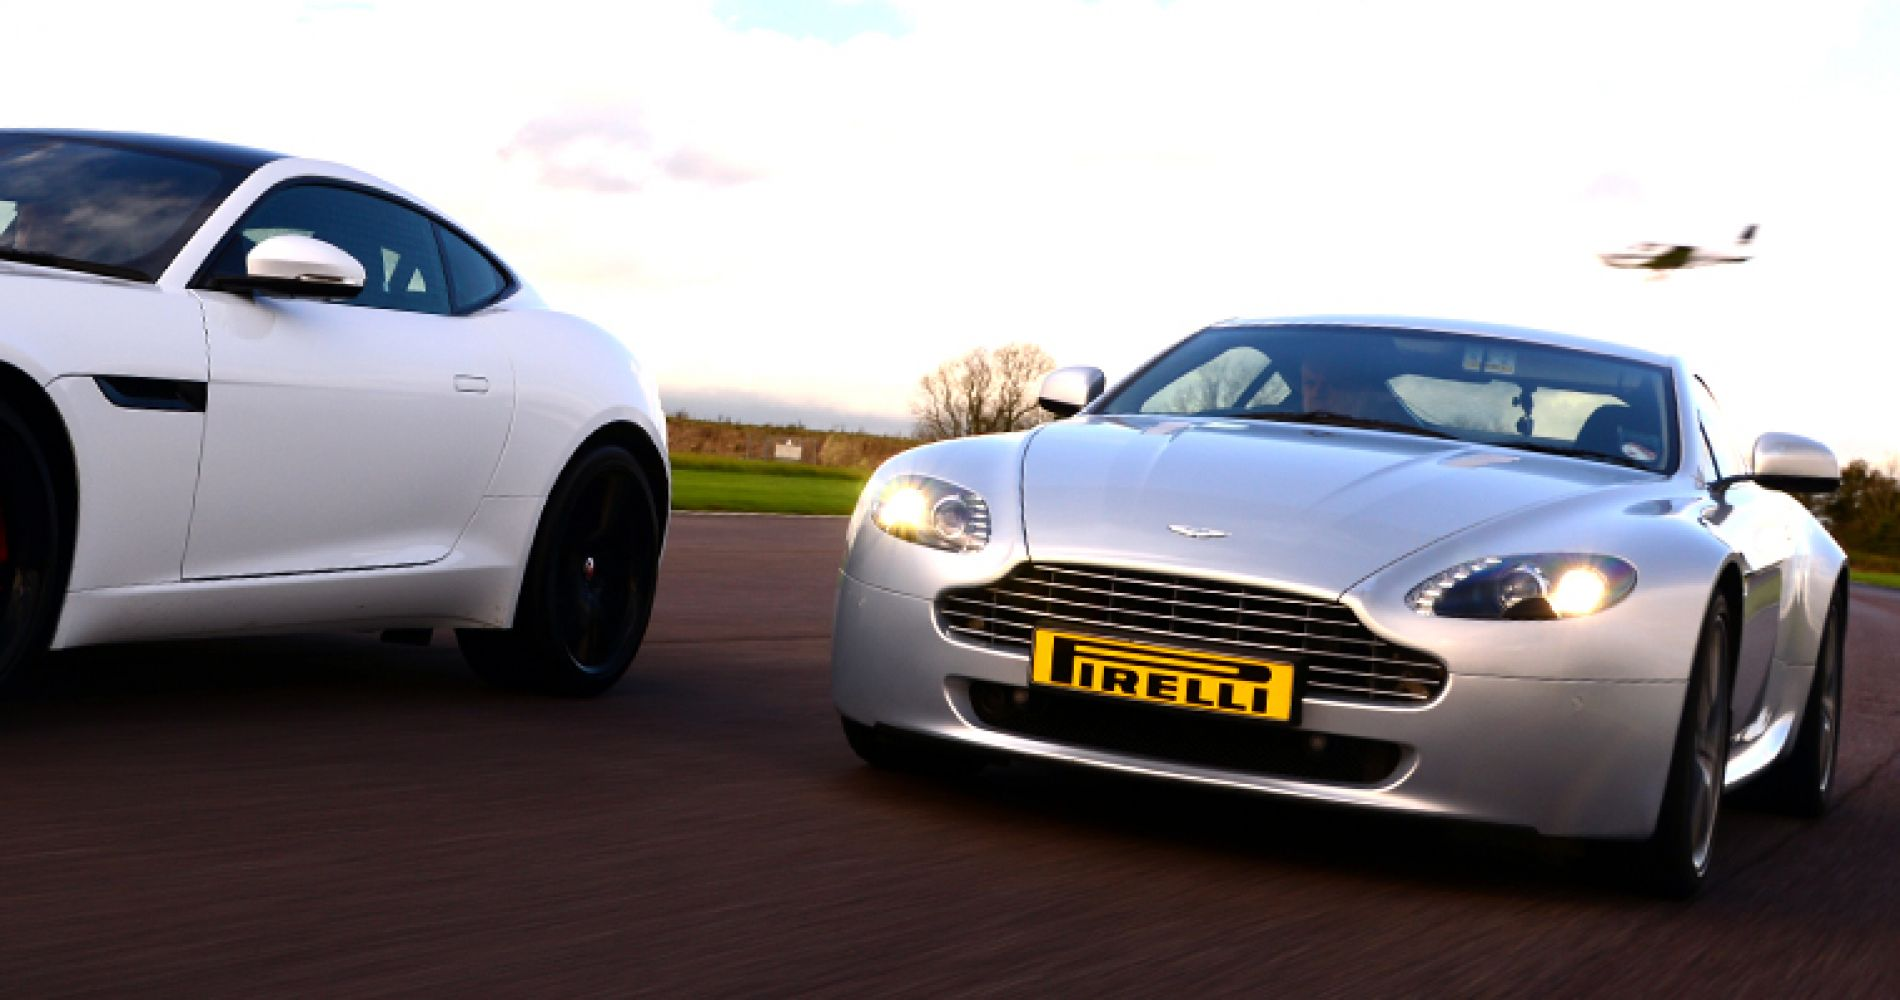 British Sportcars Driving experience